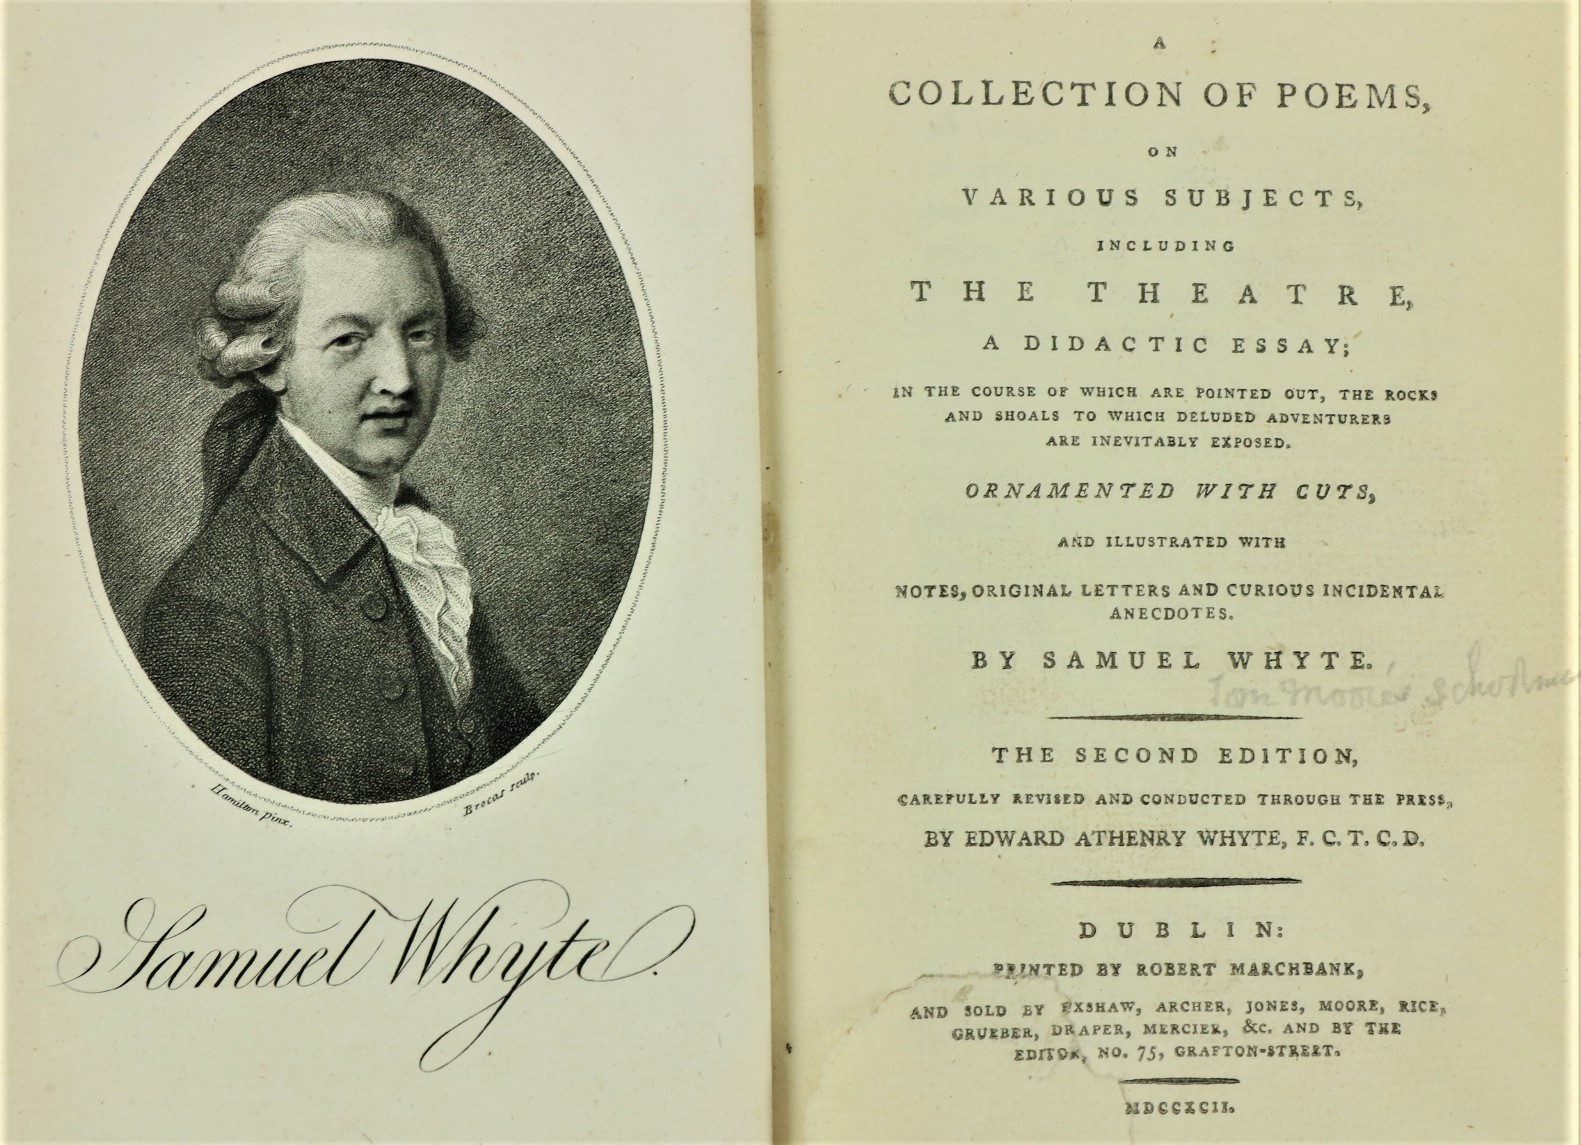 Whyte (Samuel) A Collection of Poems, on Various Subjects, includingÿThe Theatre. 8vo D. 1792.